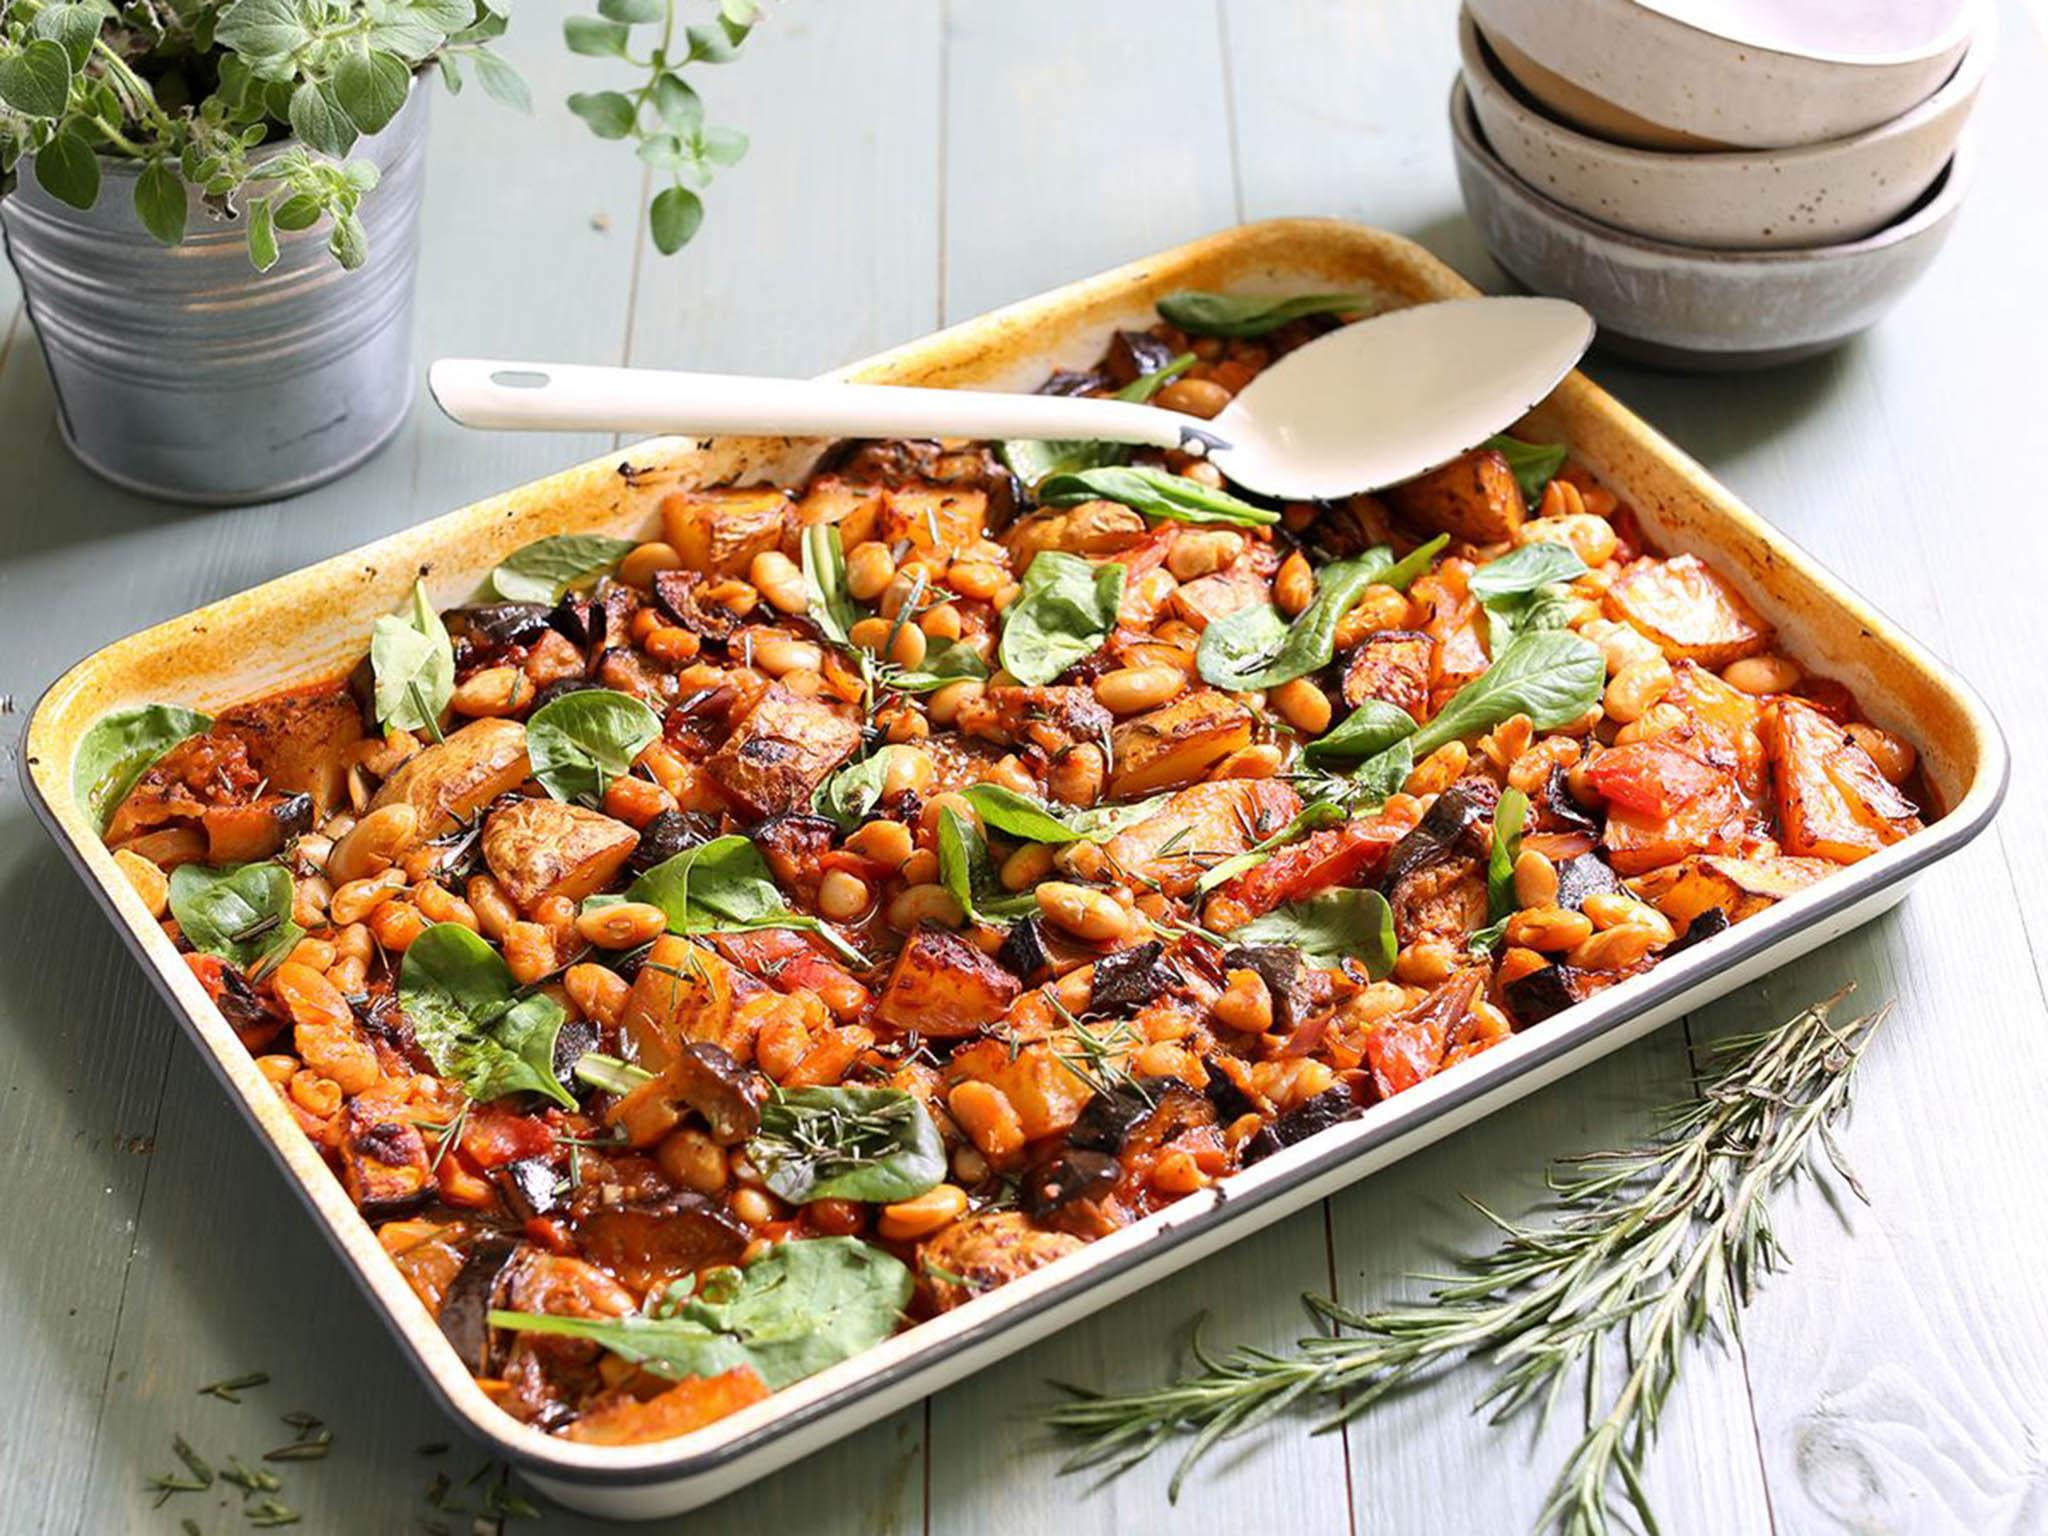 How to make tomato, aubergine and bean tray bake